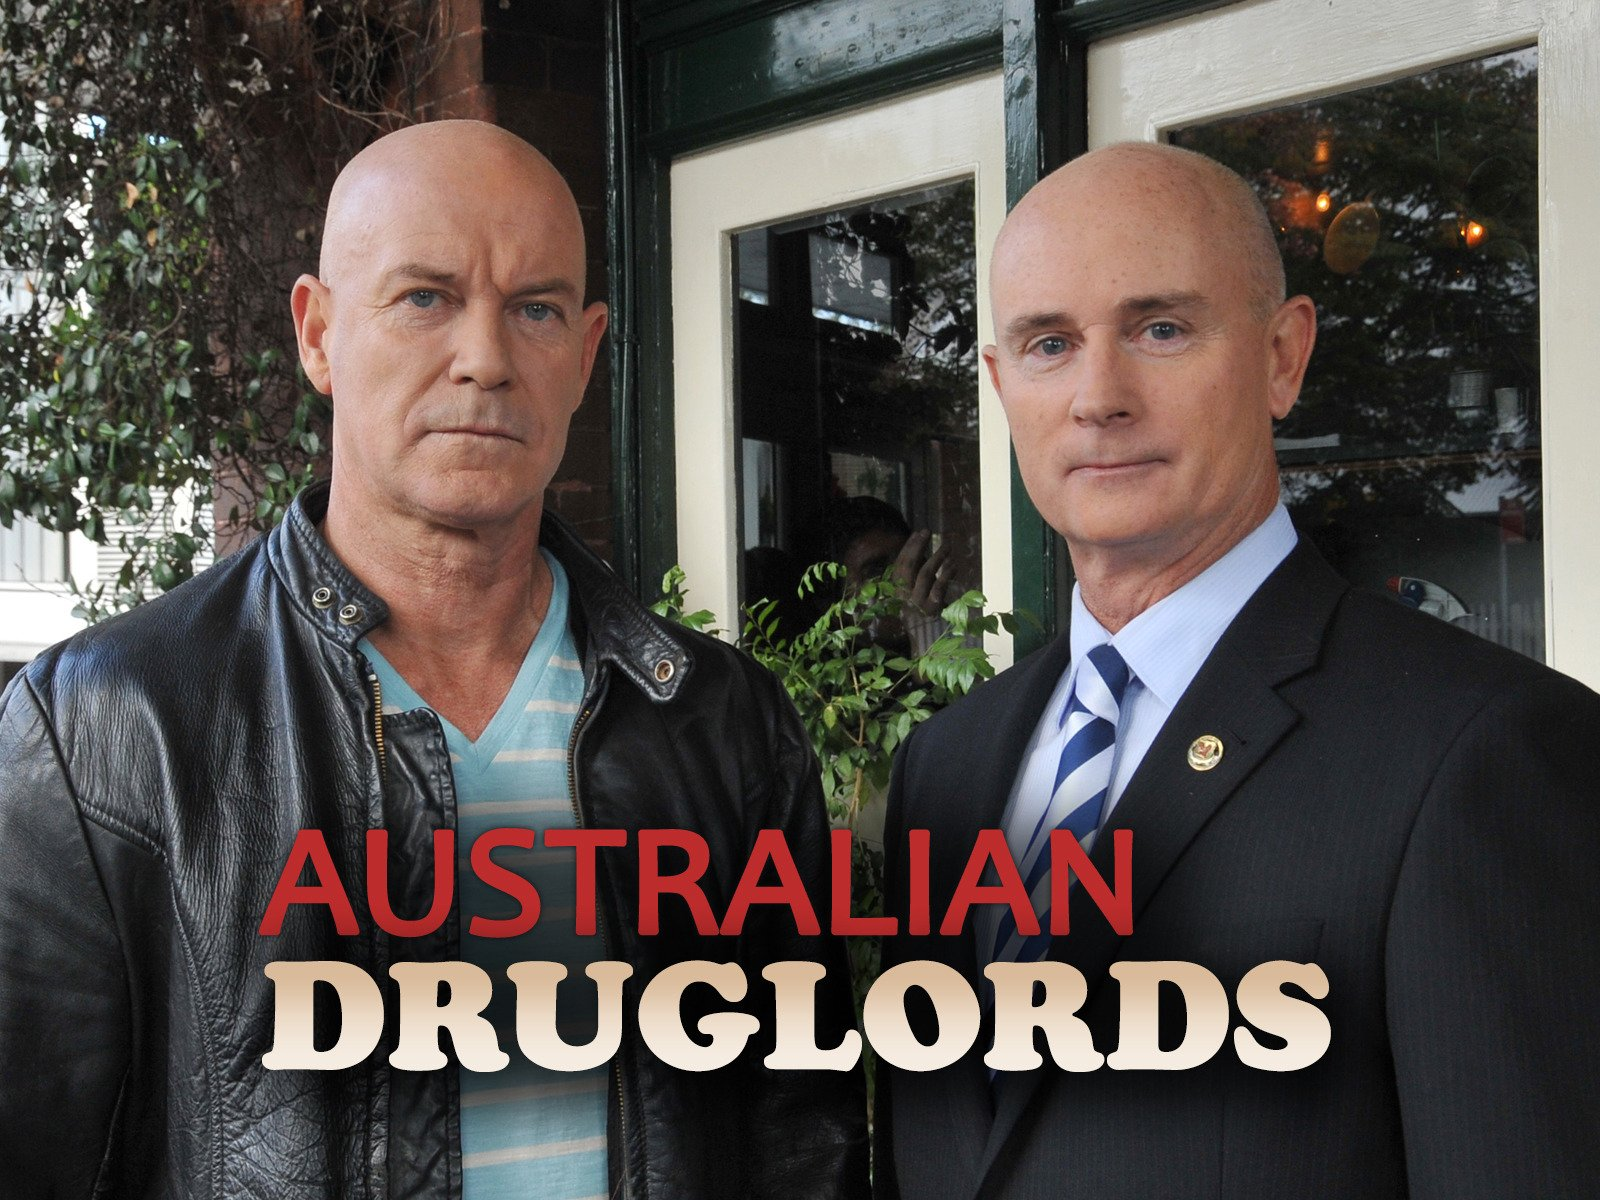 Australian Druglords - Season 1